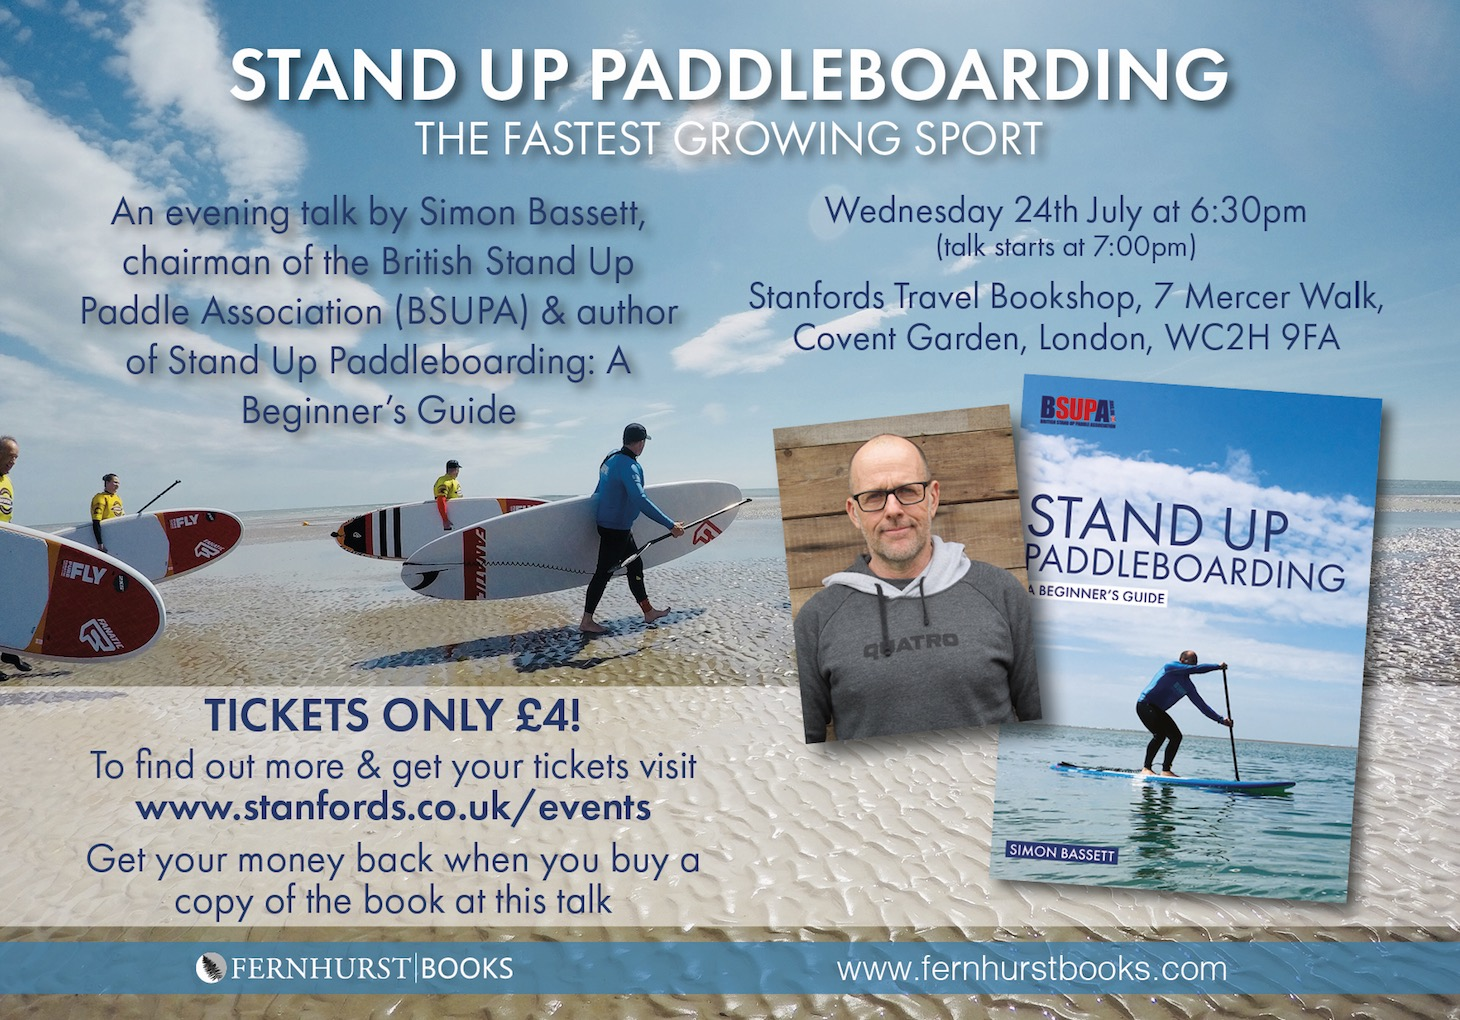 Stand Up Paddleboarding - A beginners guide